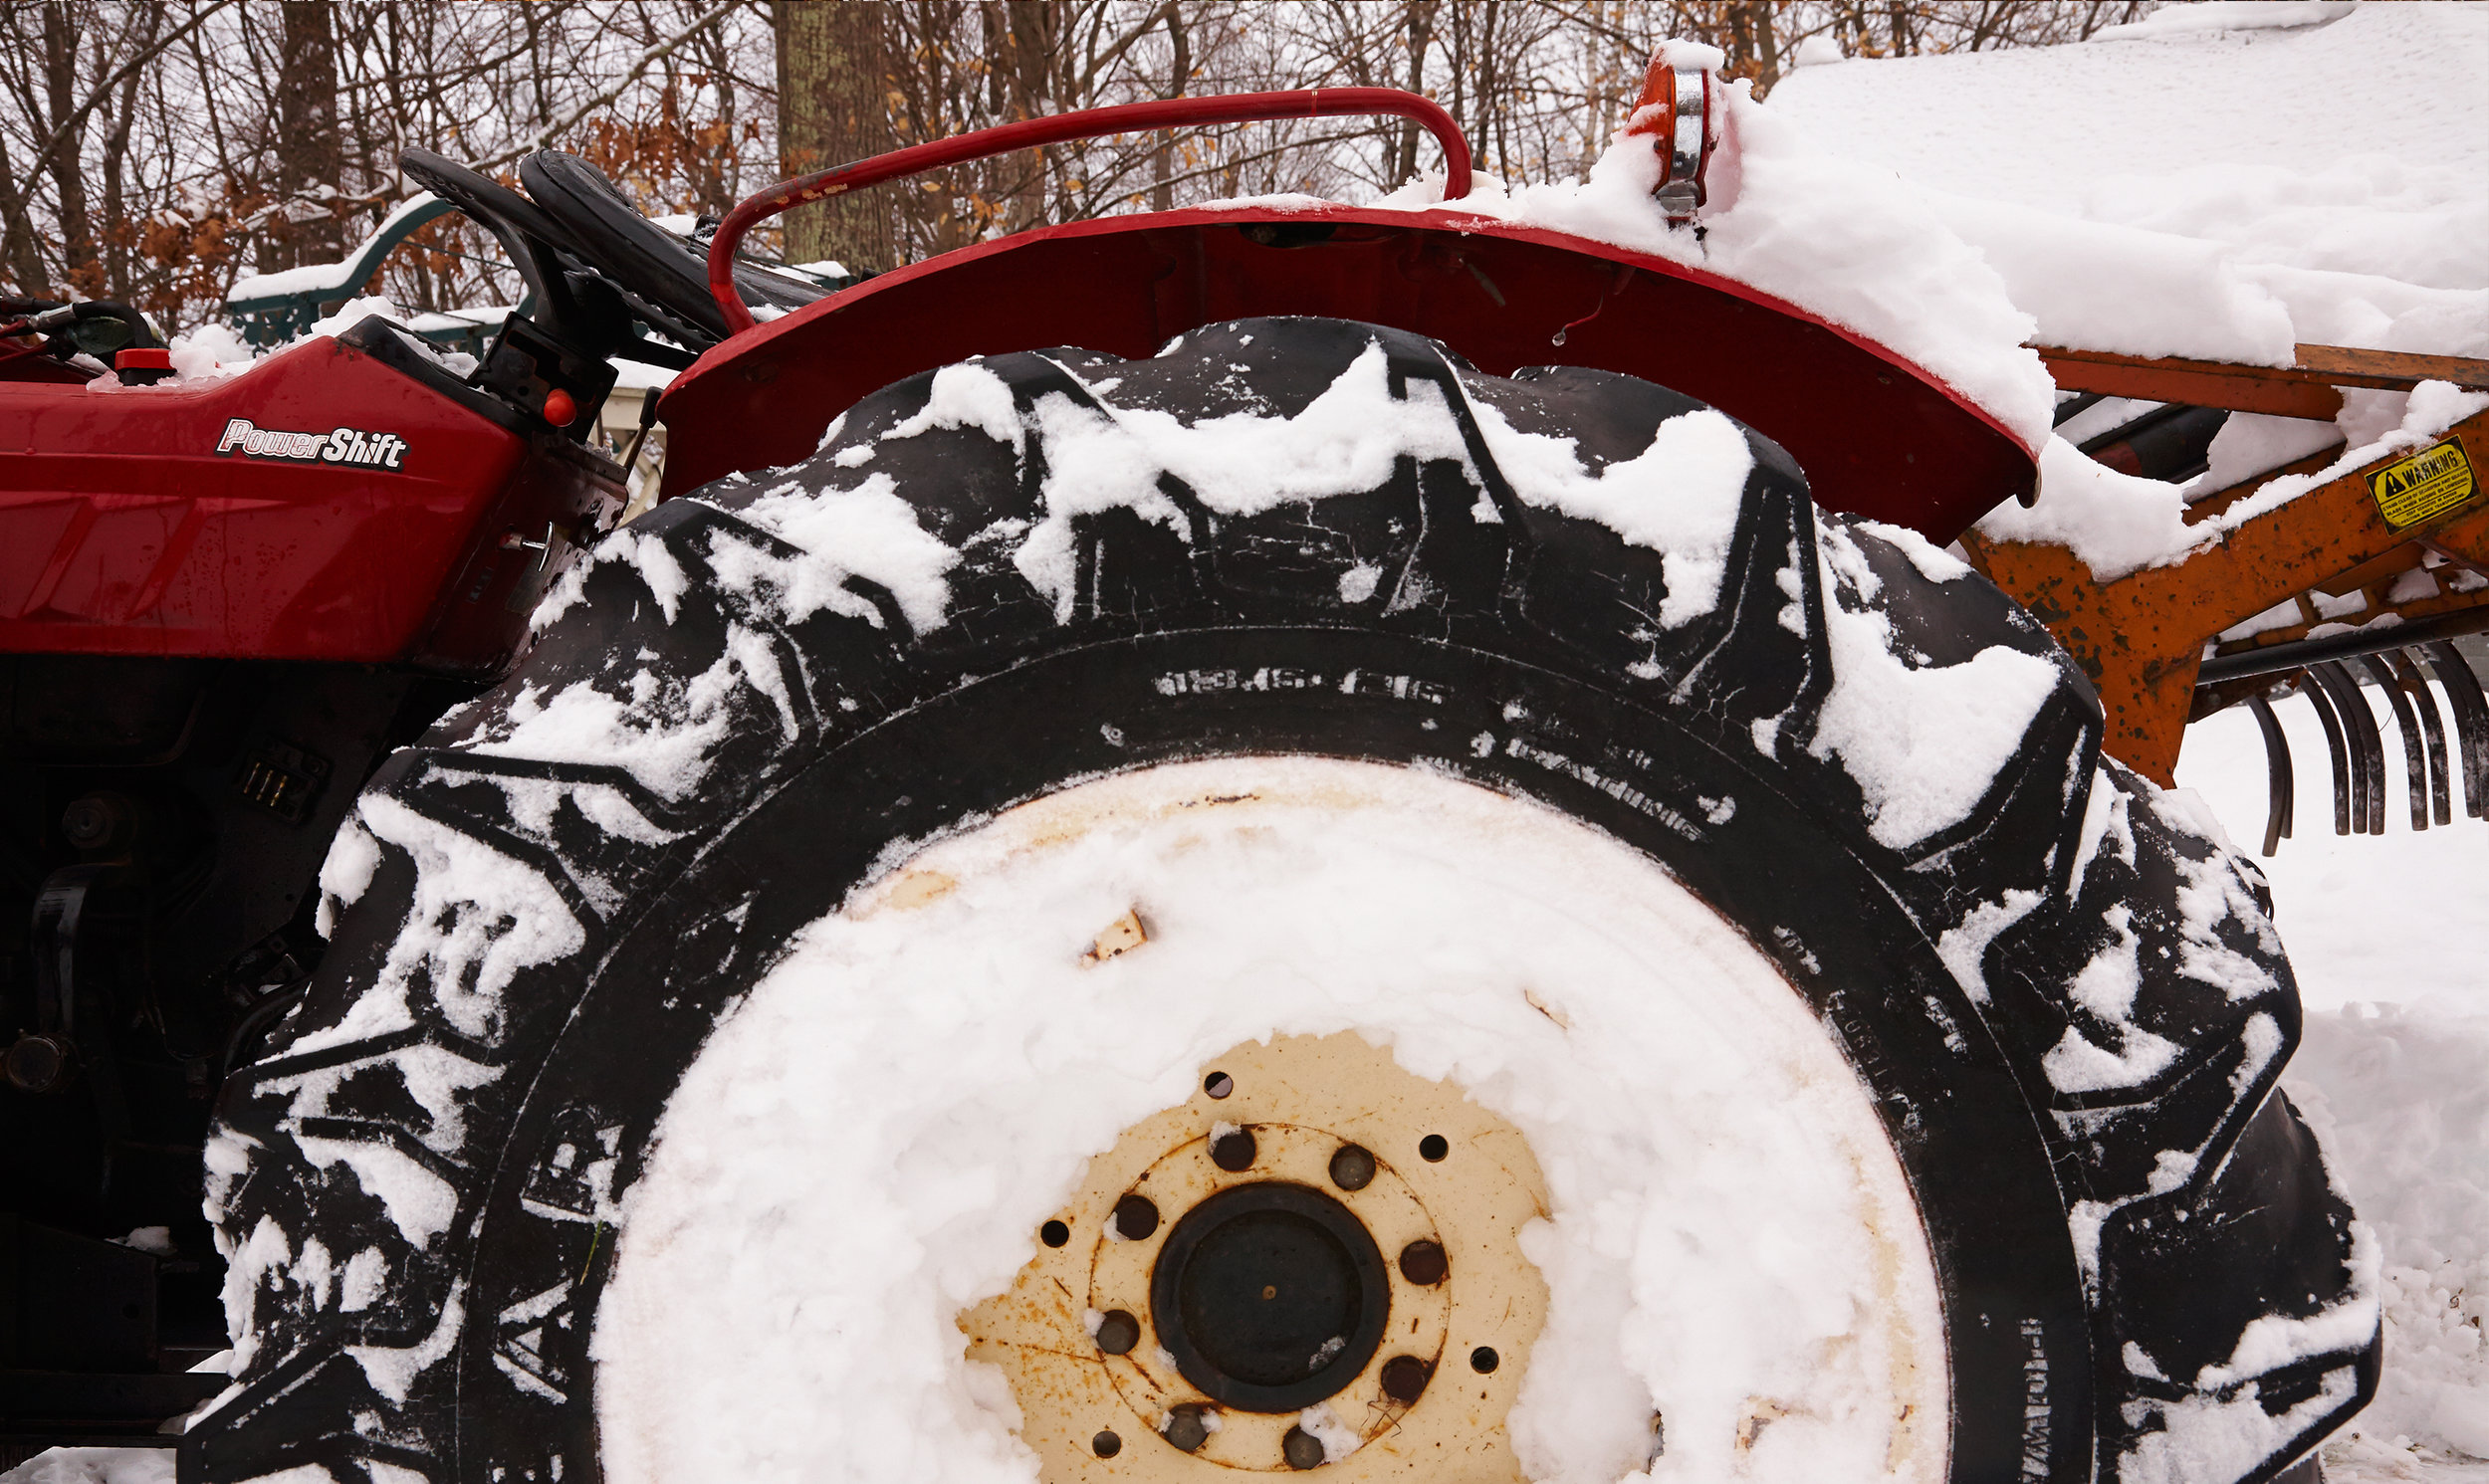 TRACTOR-WHEEL-IN-SNOW-AT-WILTSHIRE-FARM-©-JONATHAN-R.-BECKERMAN-PHOTOGRAPHY.jpg